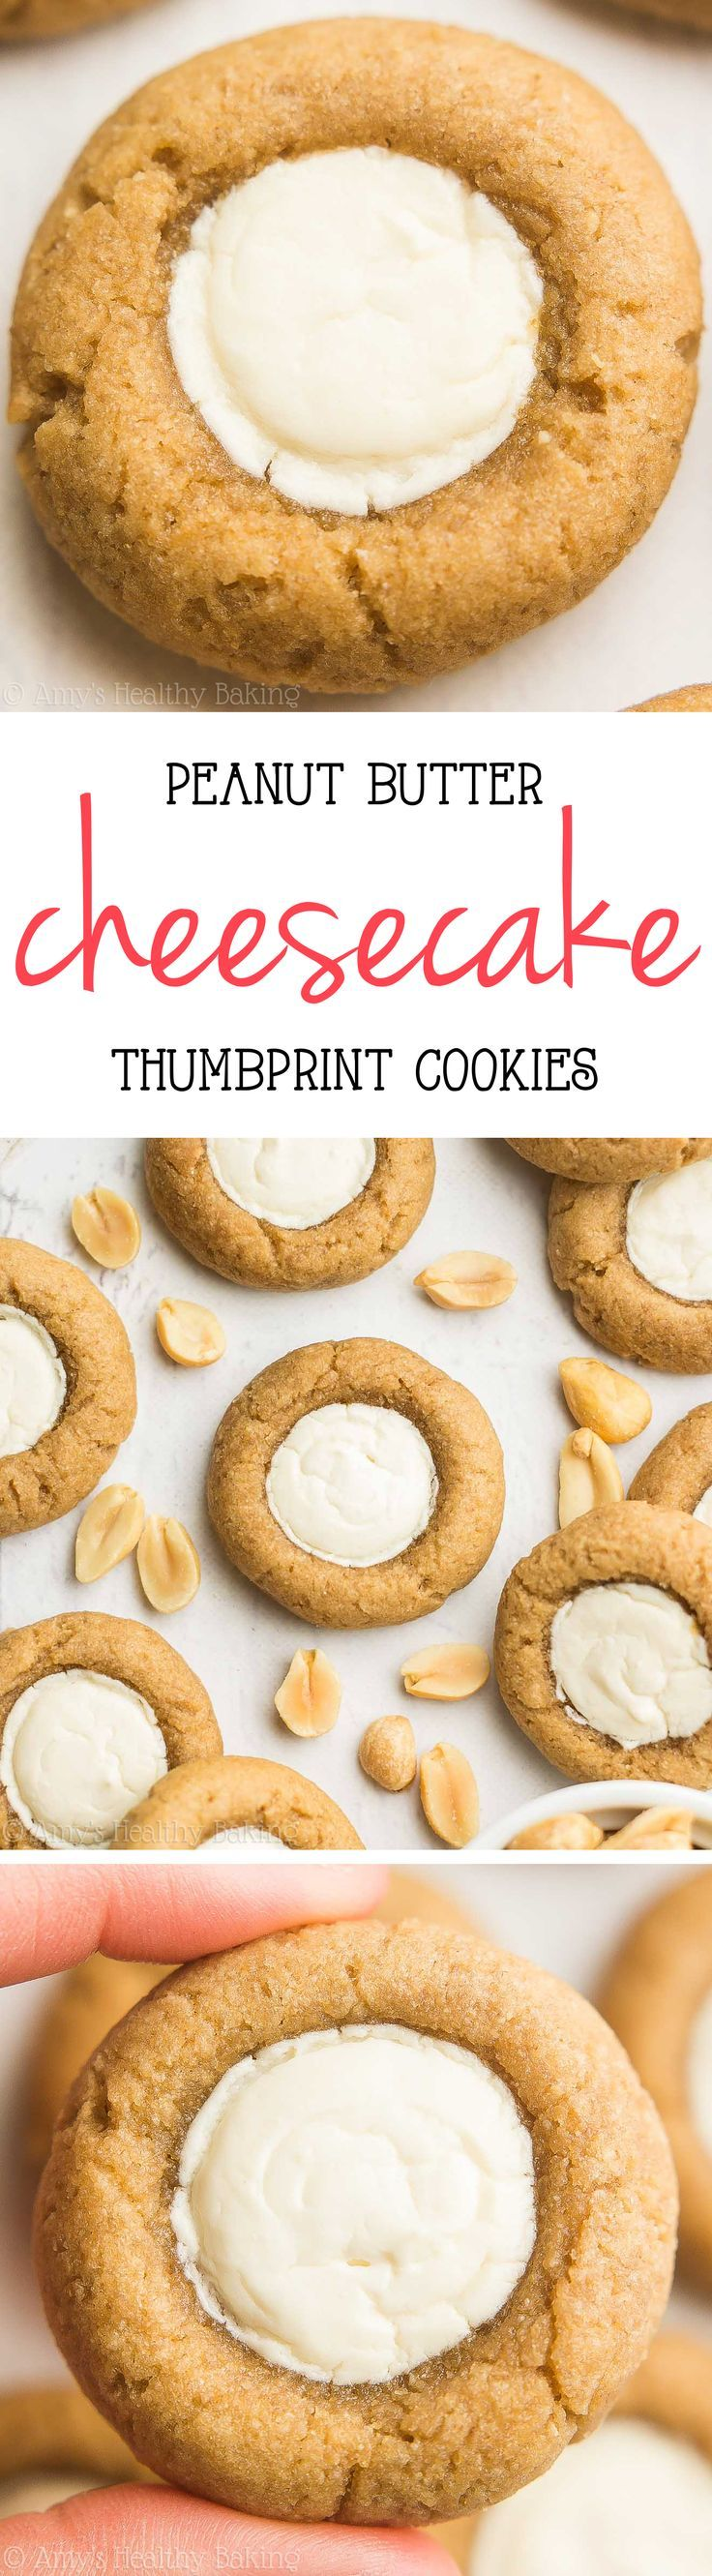 Skinny Peanut Butter Cheesecake Thumbprint Cookies -- this healthy recipe is… #Desserts #ShermanFinancialGroup